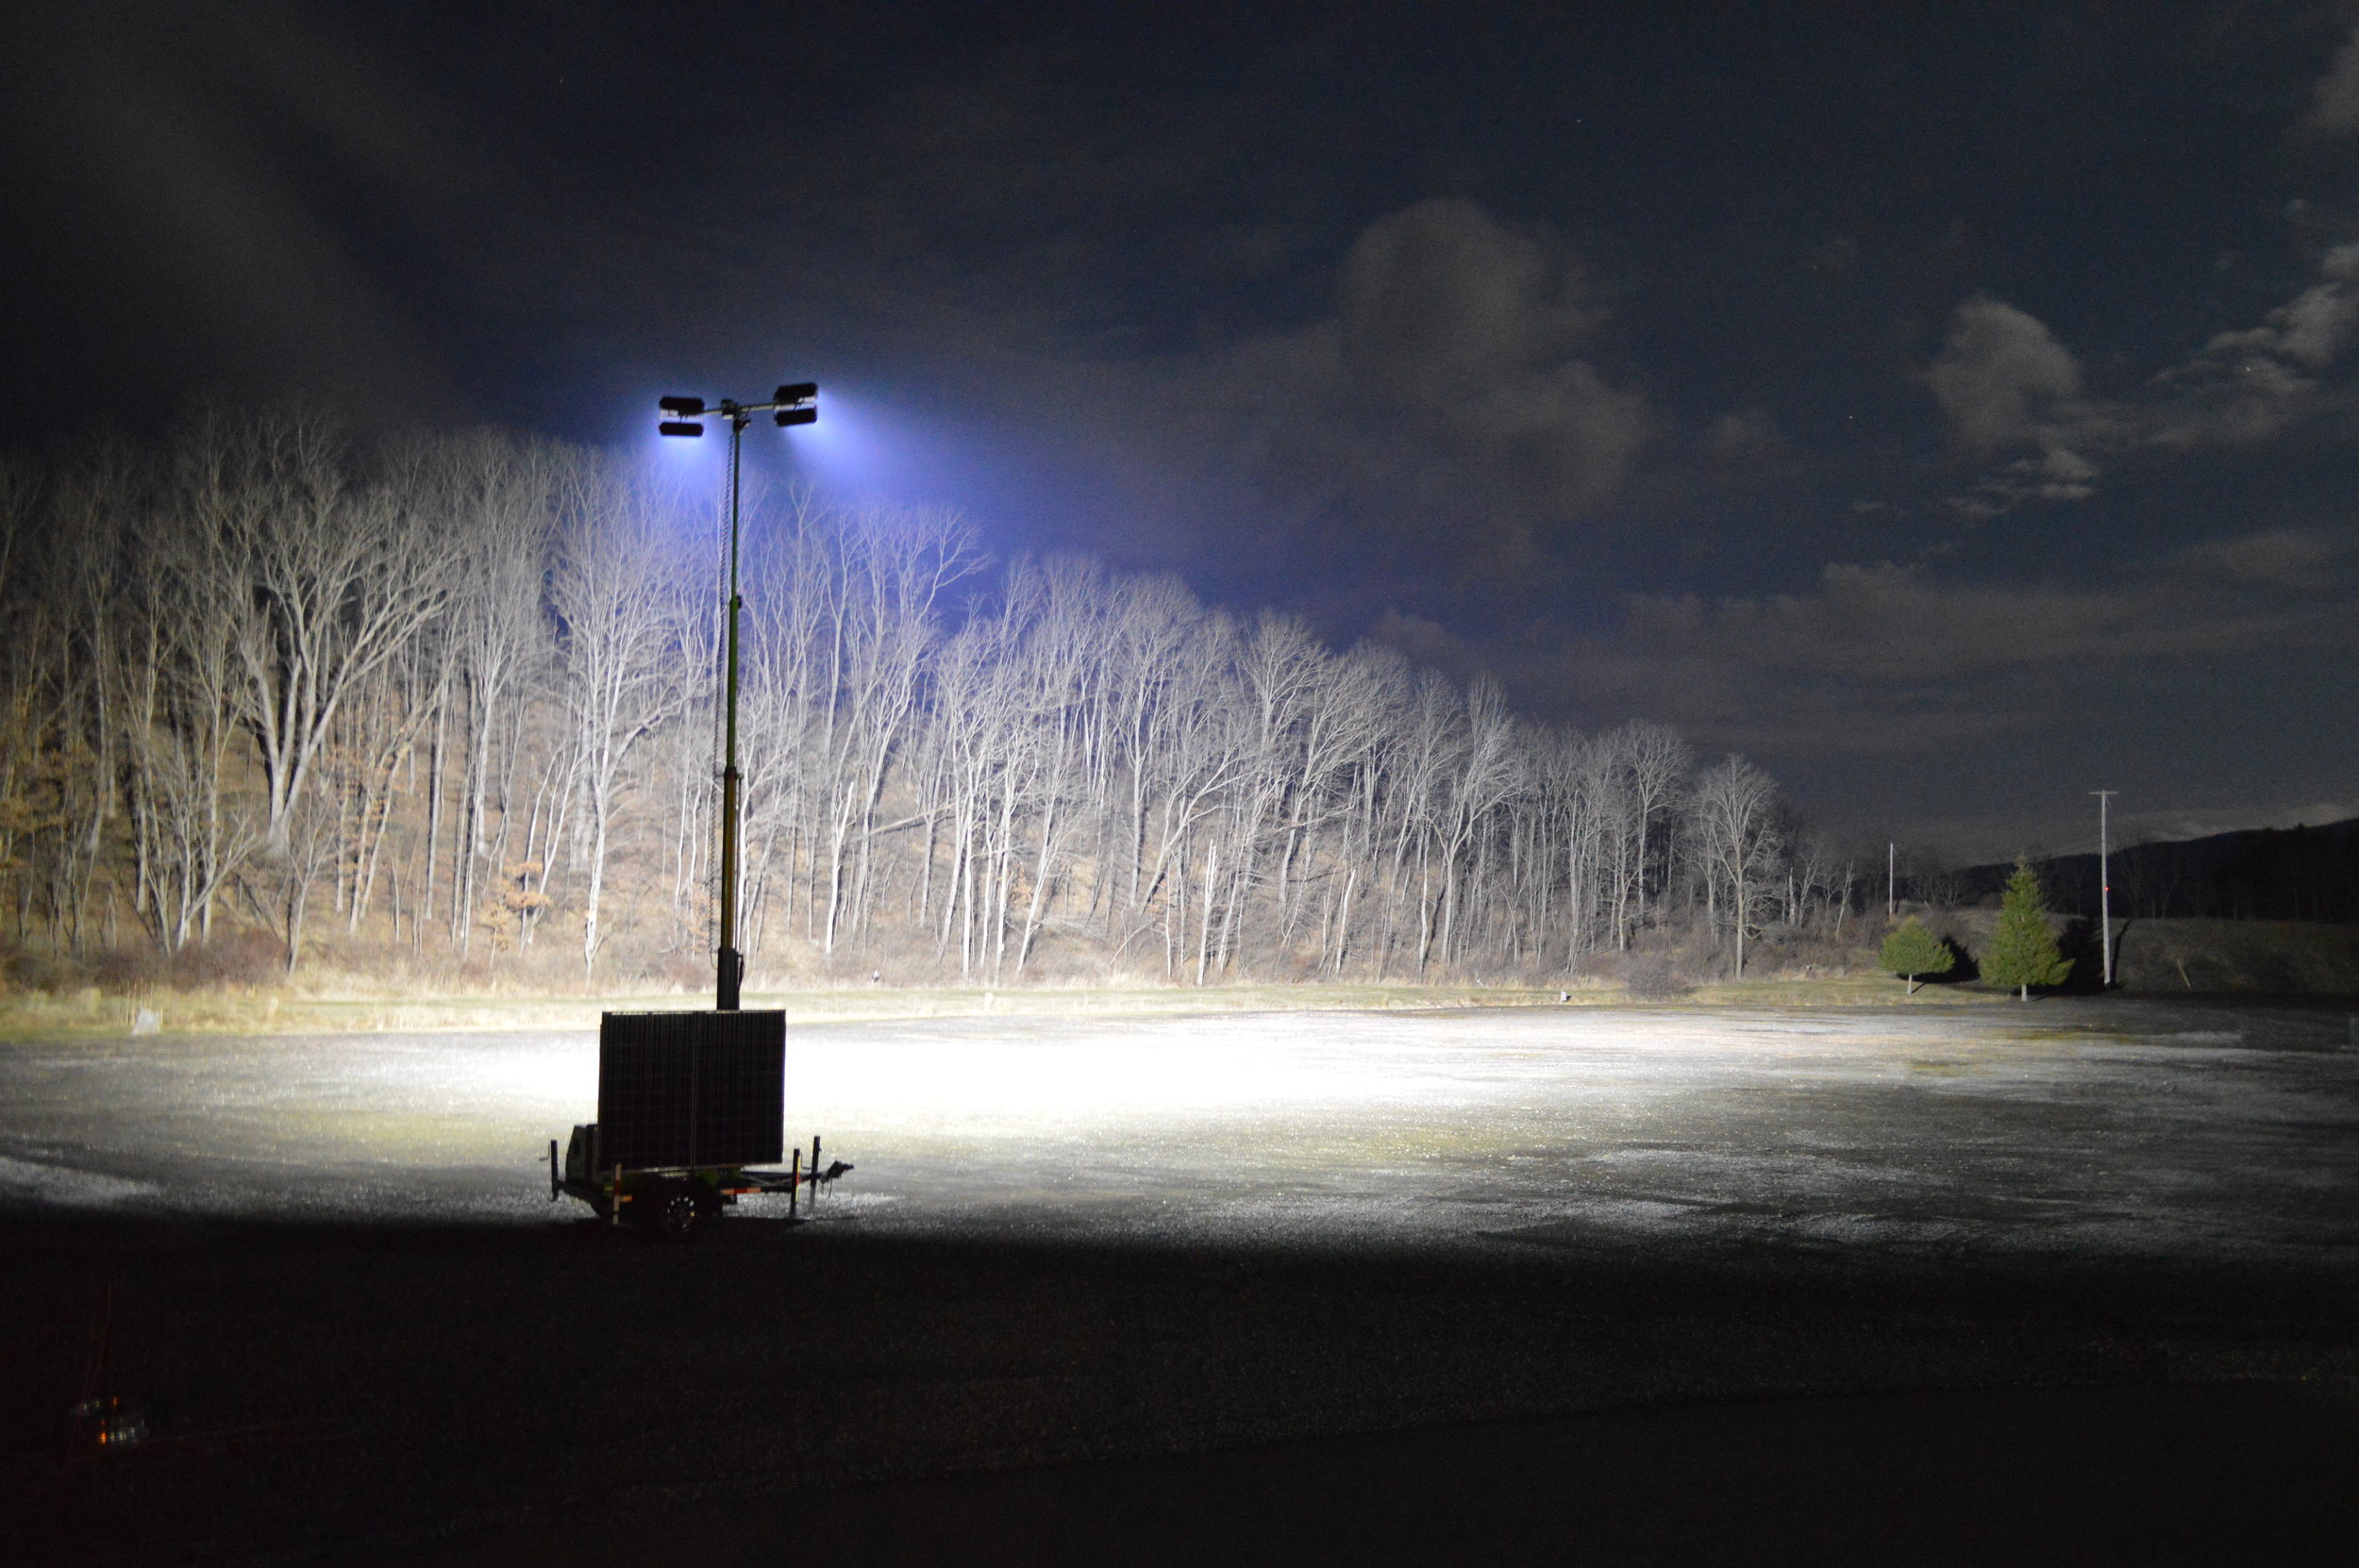 One of Dominight's solar hybrid Towers providing Massive light output During testing. Now assisting african and american troops in burkina faso, africa.